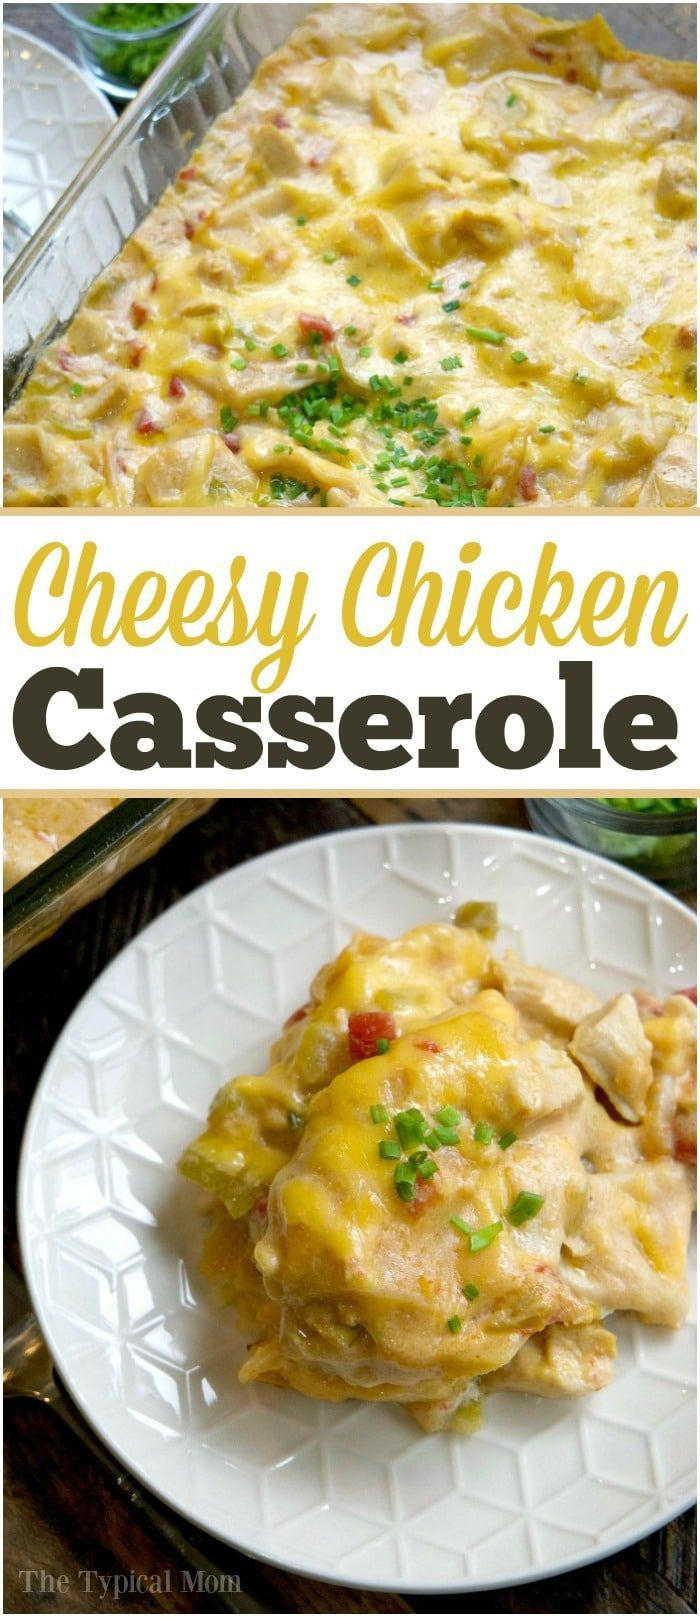 This chicken tortilla bake casserole is amazing!! My kids favorite cheesy casserole packed with chicken, chiles, and quick to throw together! AD via @thetypicalmom